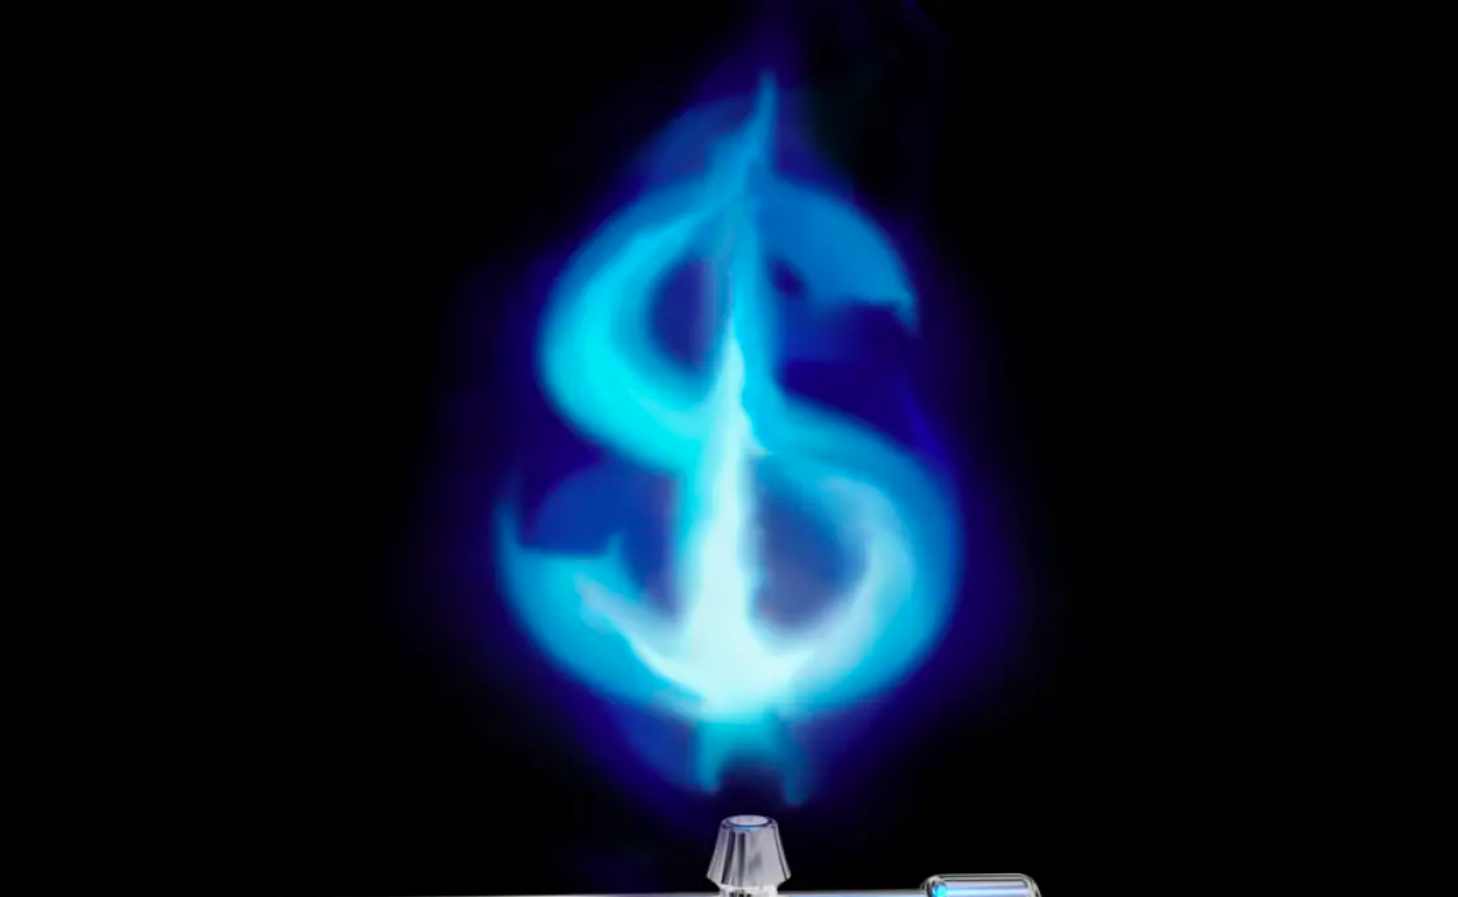 Cheapest Business Gas Supplier: Study shows savings of $2400